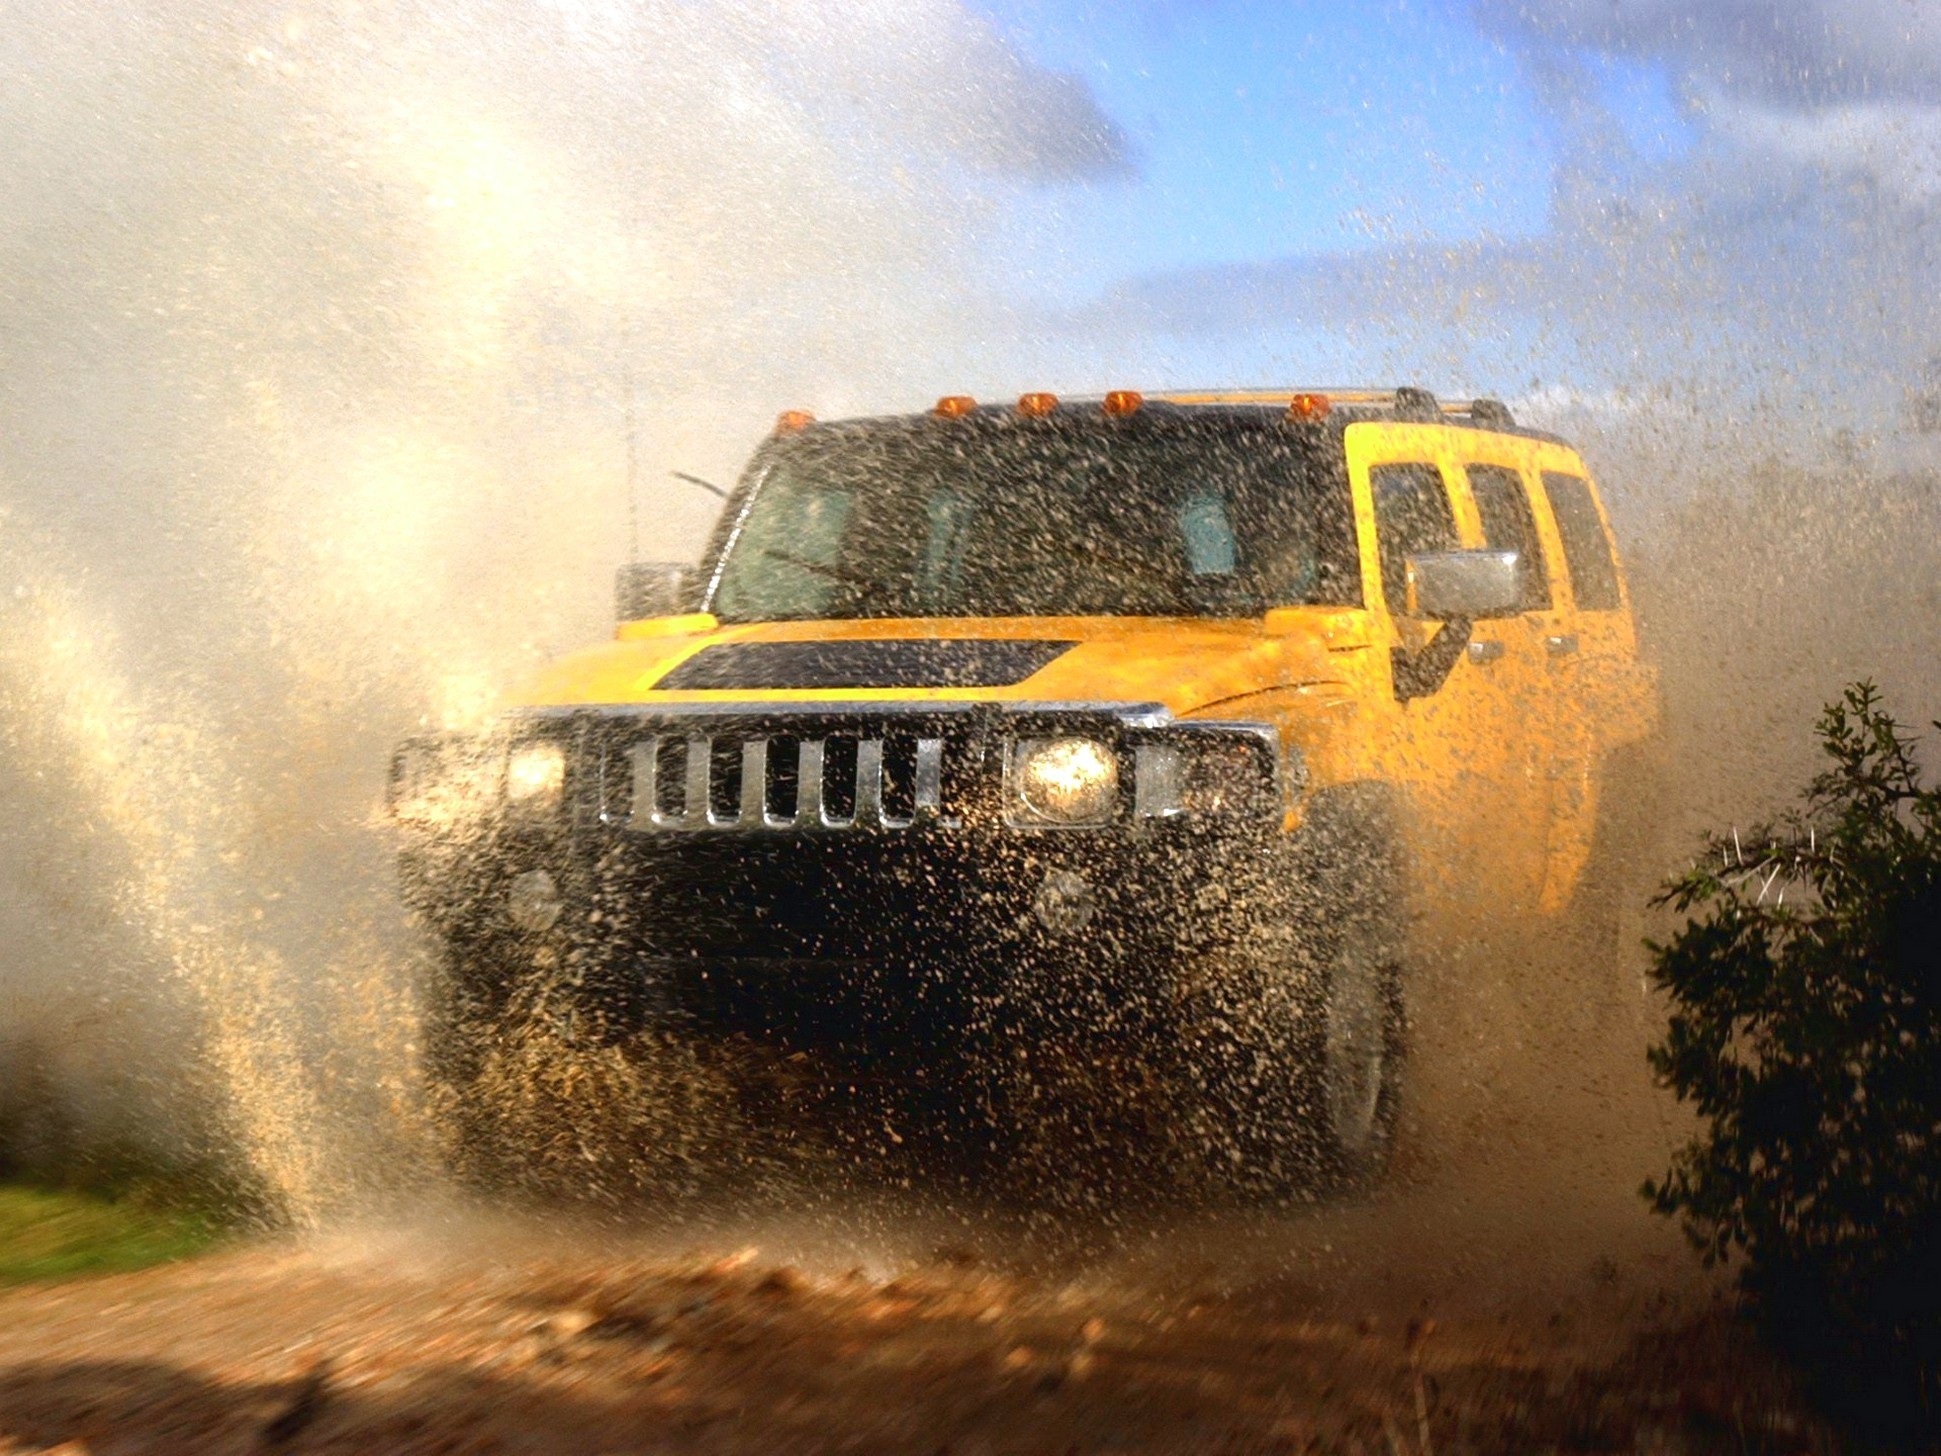 Hummer Car Wallpapers 2018 183 ① Wallpapertag